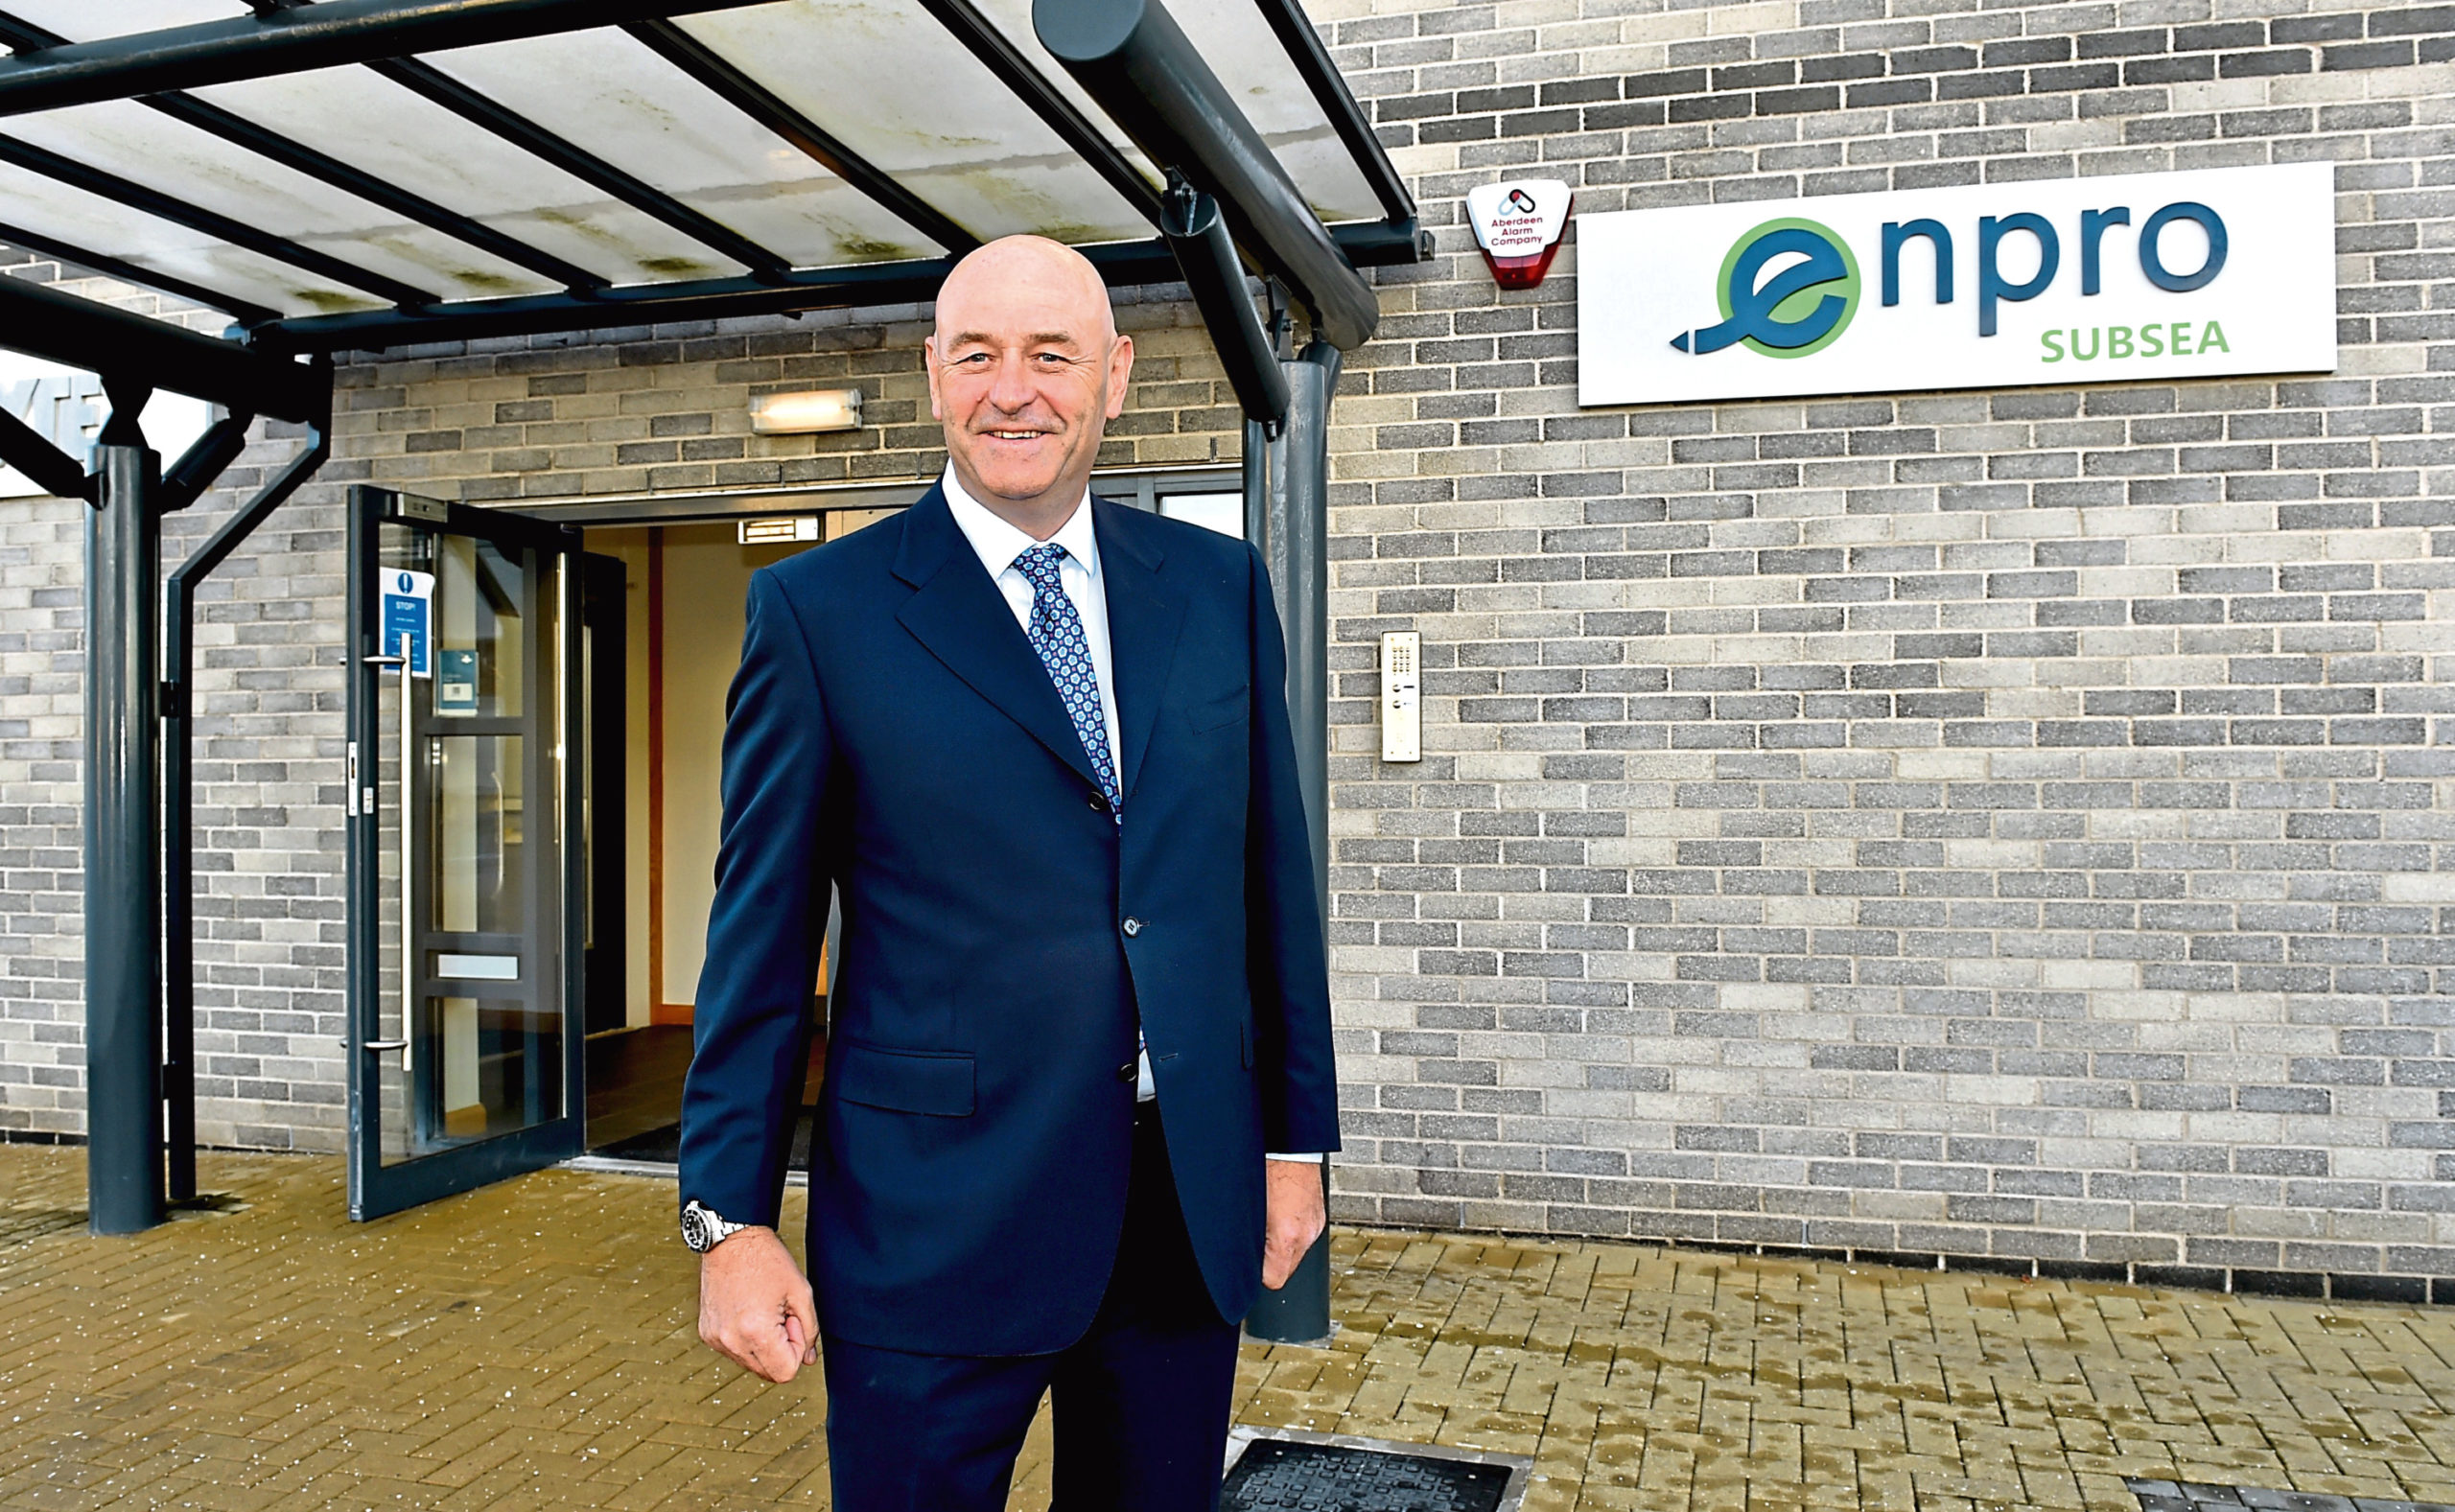 Enpro Subsea at Arnhall Business Park in Westhill.  MD Ian Donald   Picture by Colin Rennie.